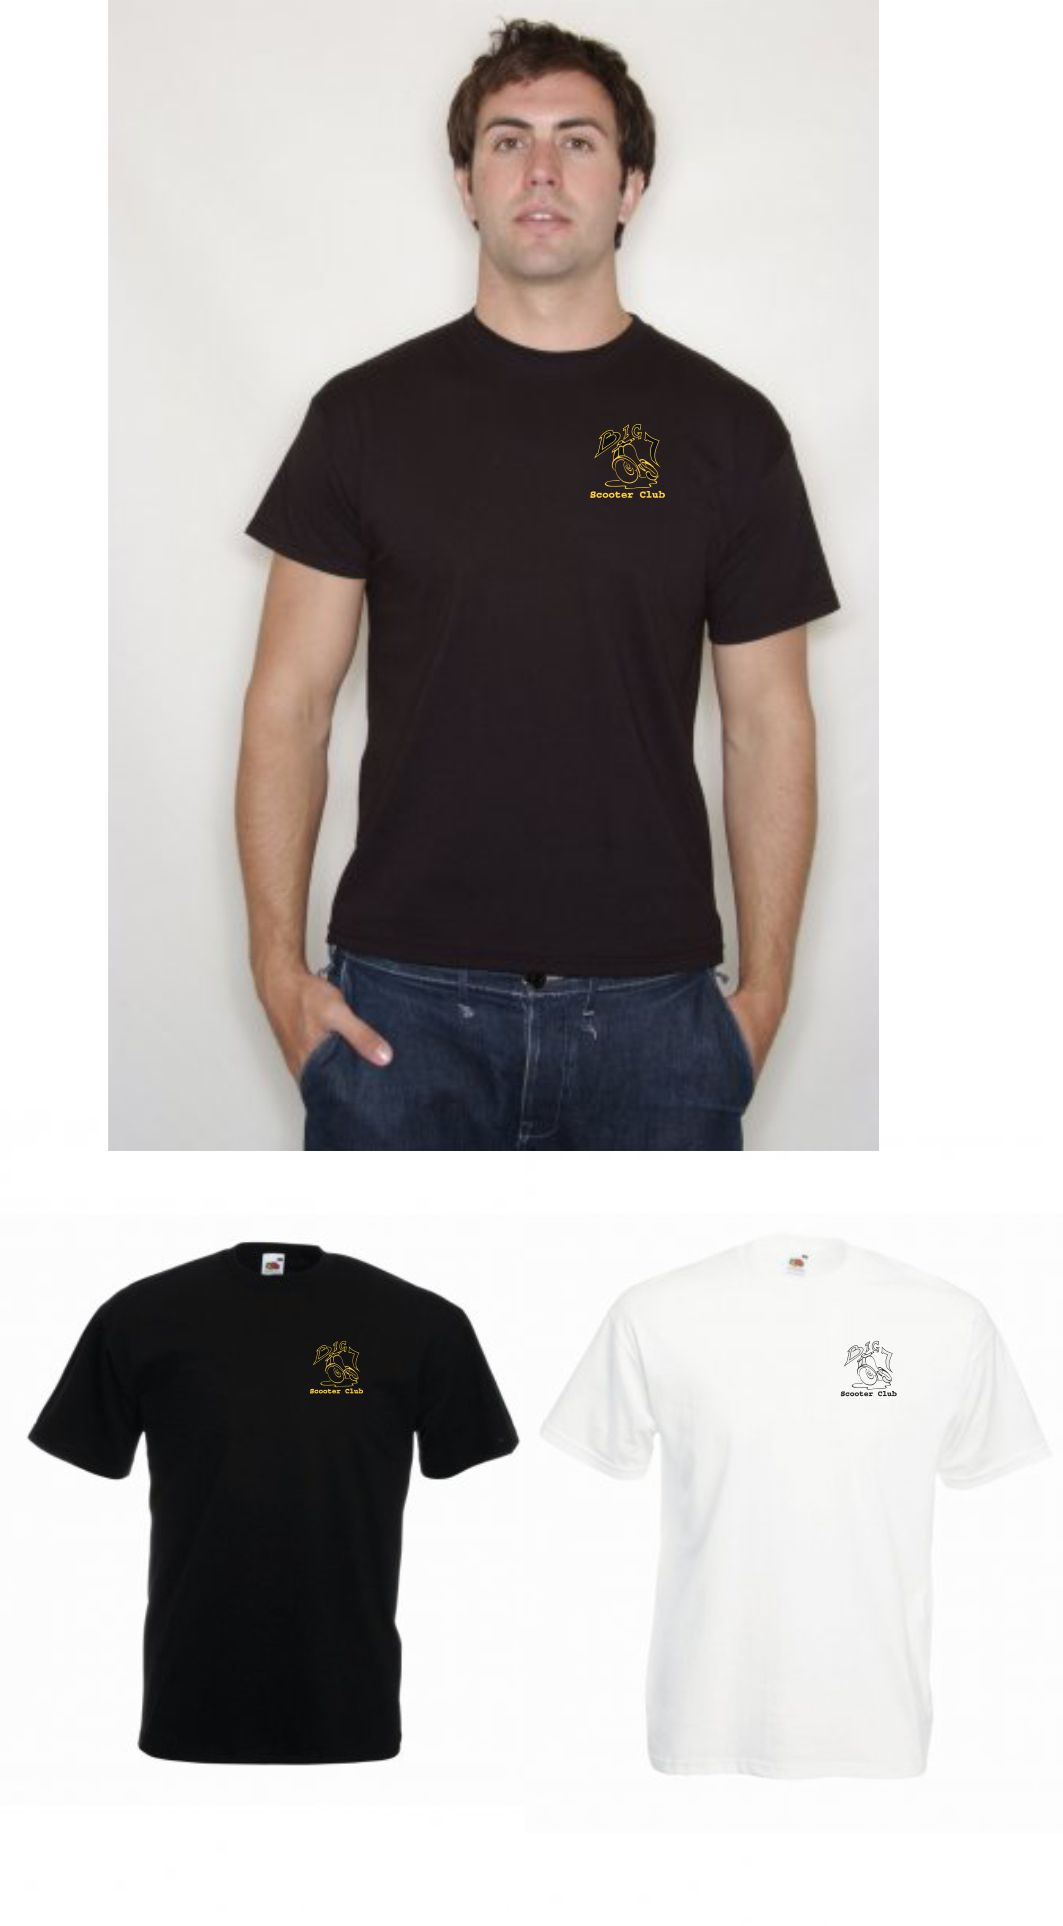 Big 7 Tee Shirt with left hand embroidered logo